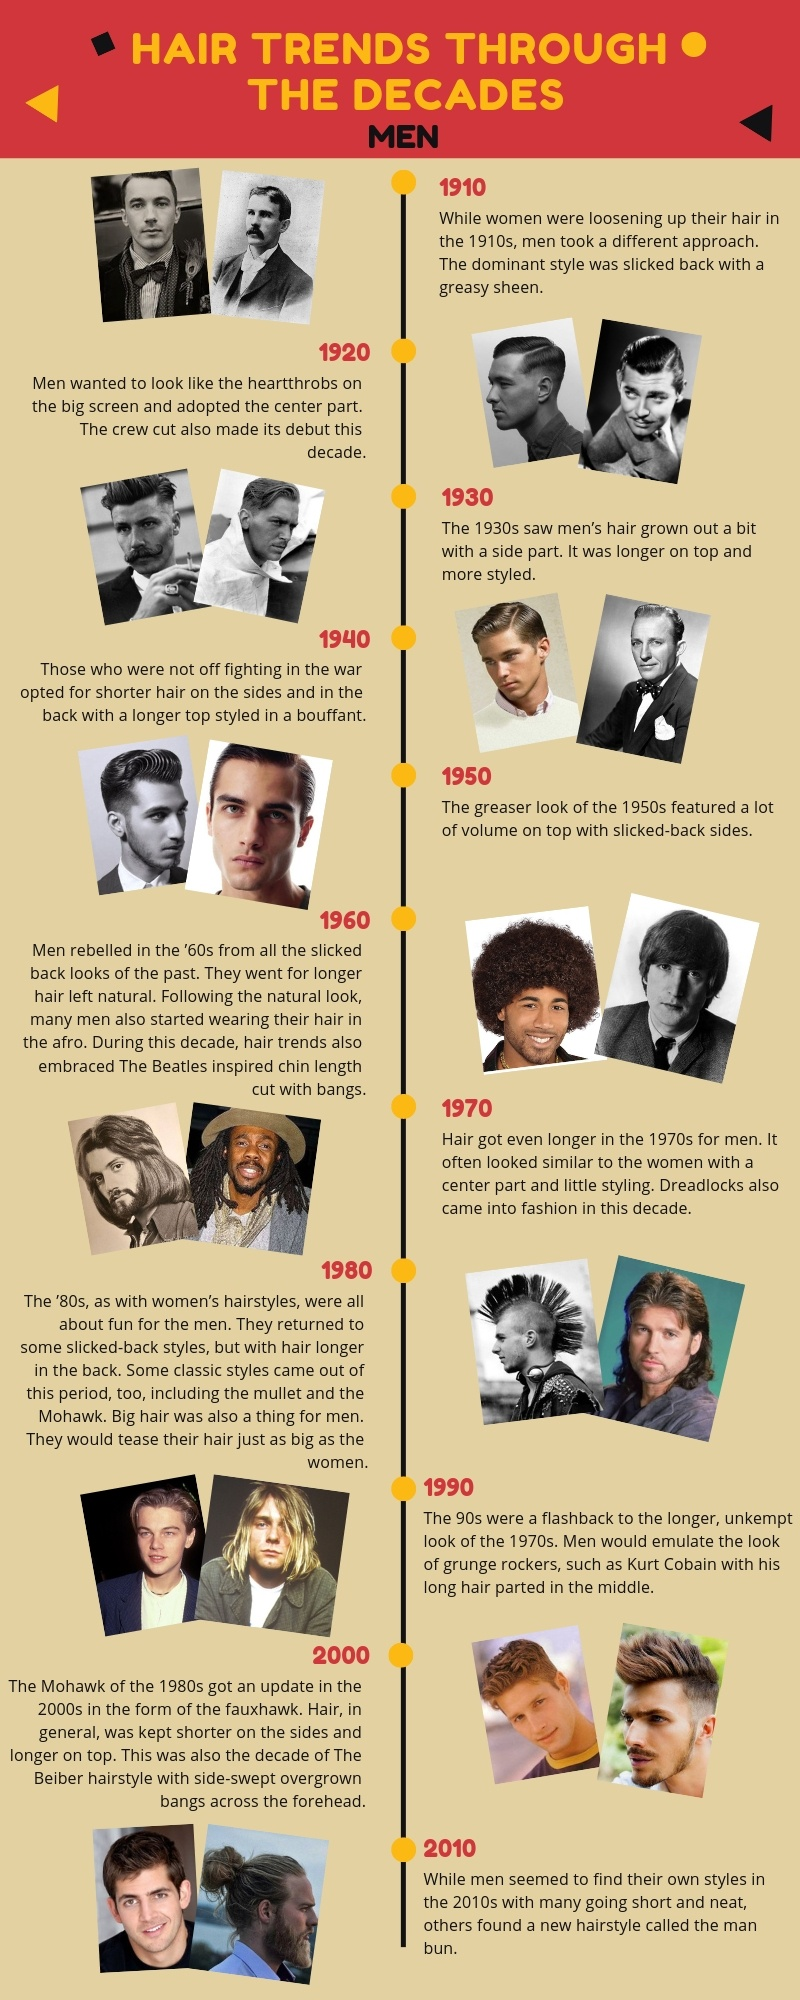 Hair Trends Through the Decades for men